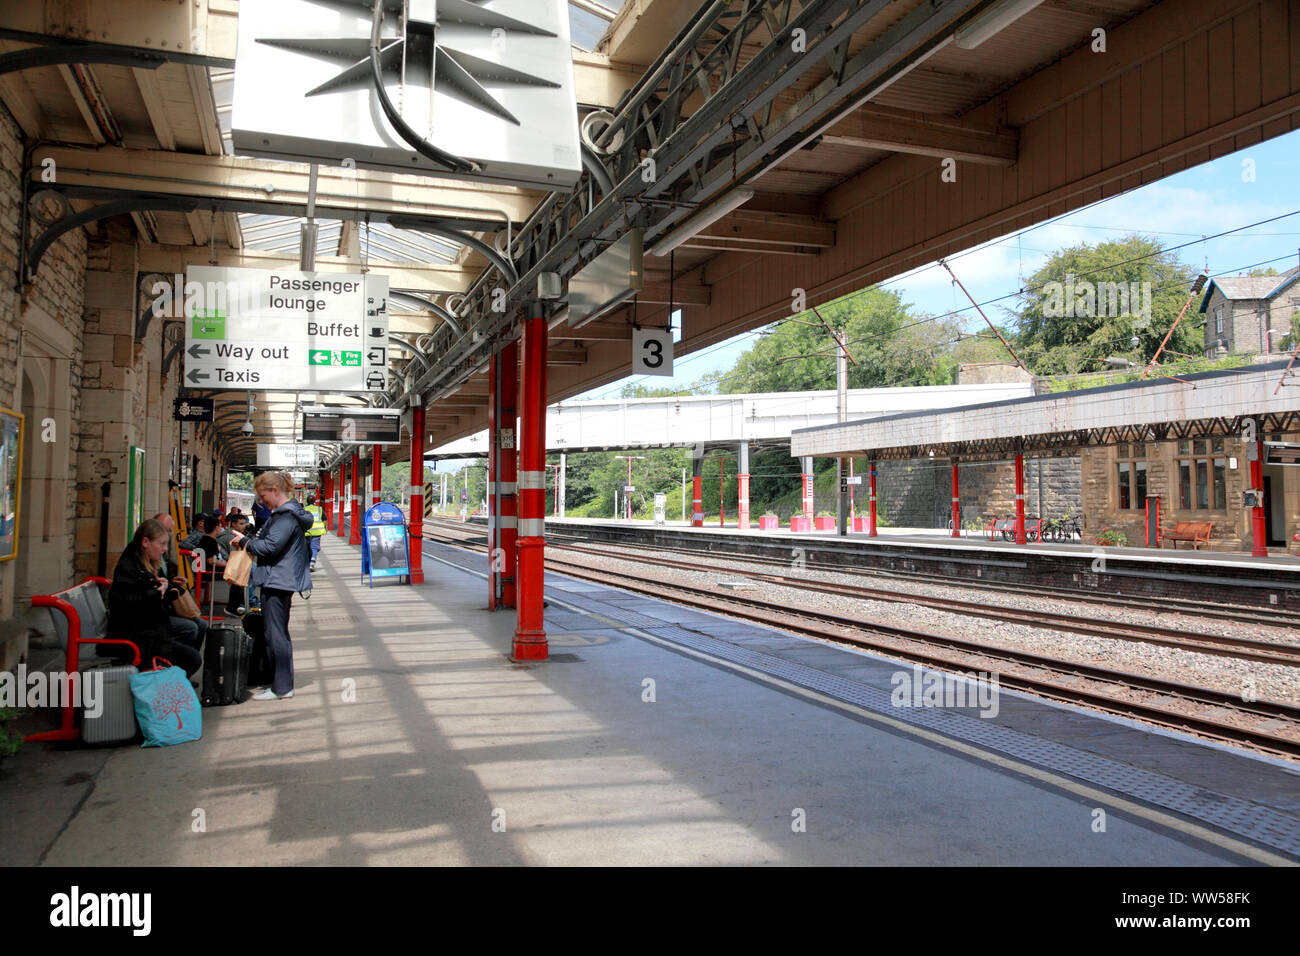 Platform 3 At Lancaster Station Where Most Trains Are Travelling In A Northerly Direction Stock Photo Alamy